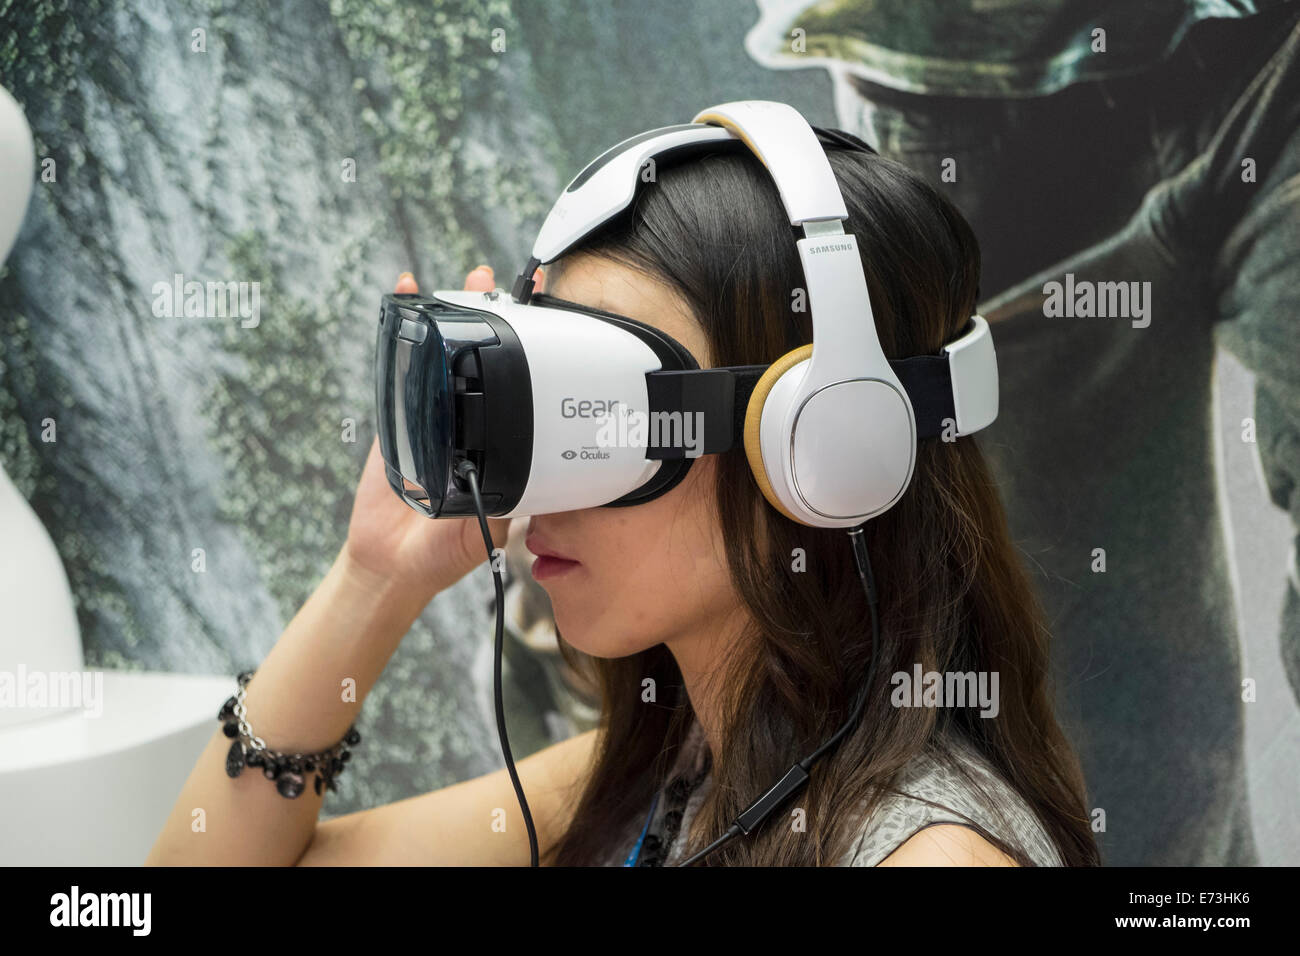 d8e5ef968ae Gear Vr Stock Photos   Gear Vr Stock Images - Alamy